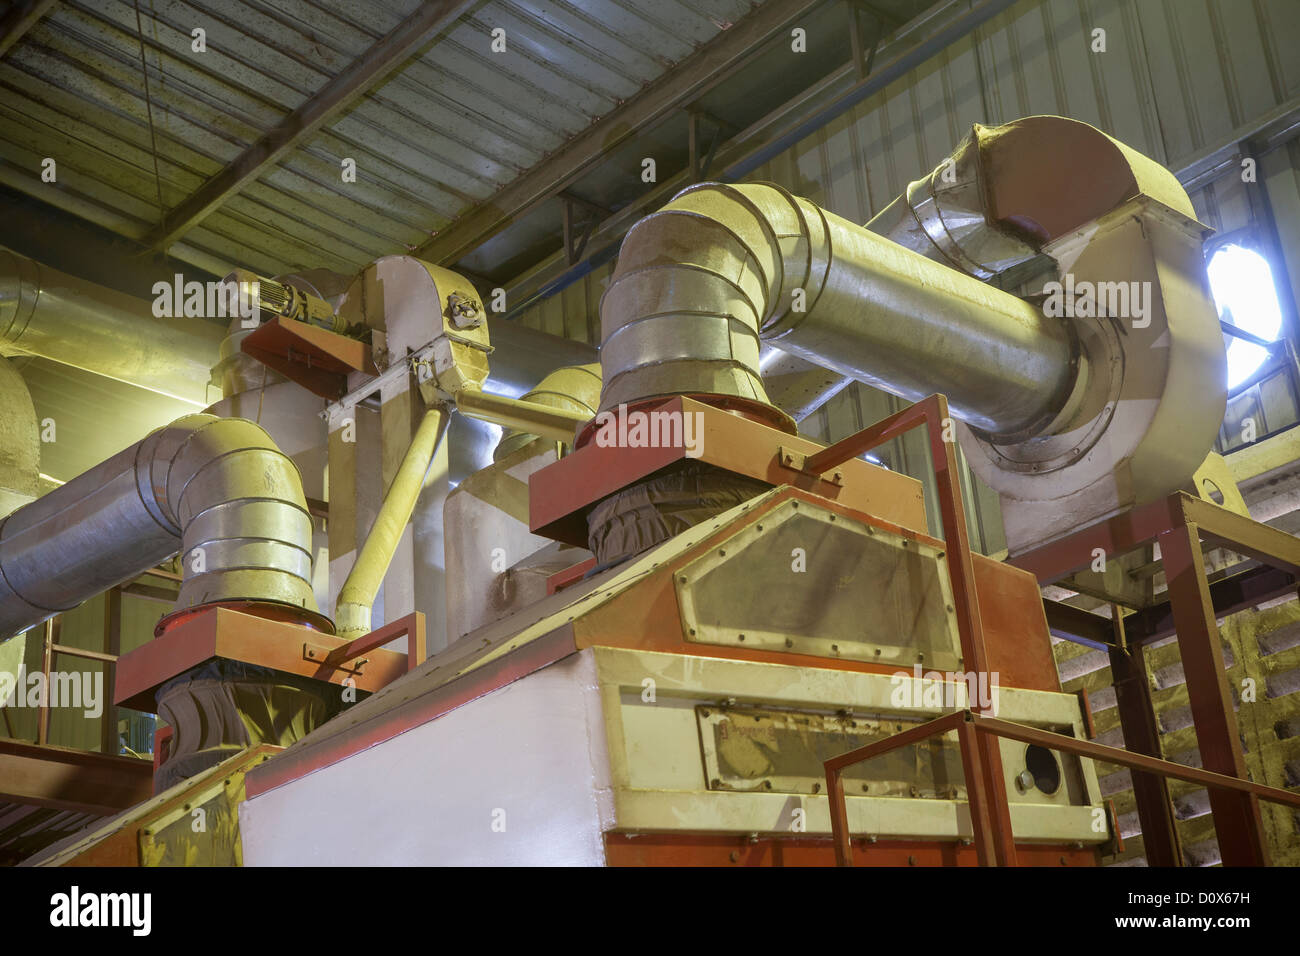 Processing machinery at a commodities warehouse in Dar es Salaam, Tanzania, East Africa. - Stock Image